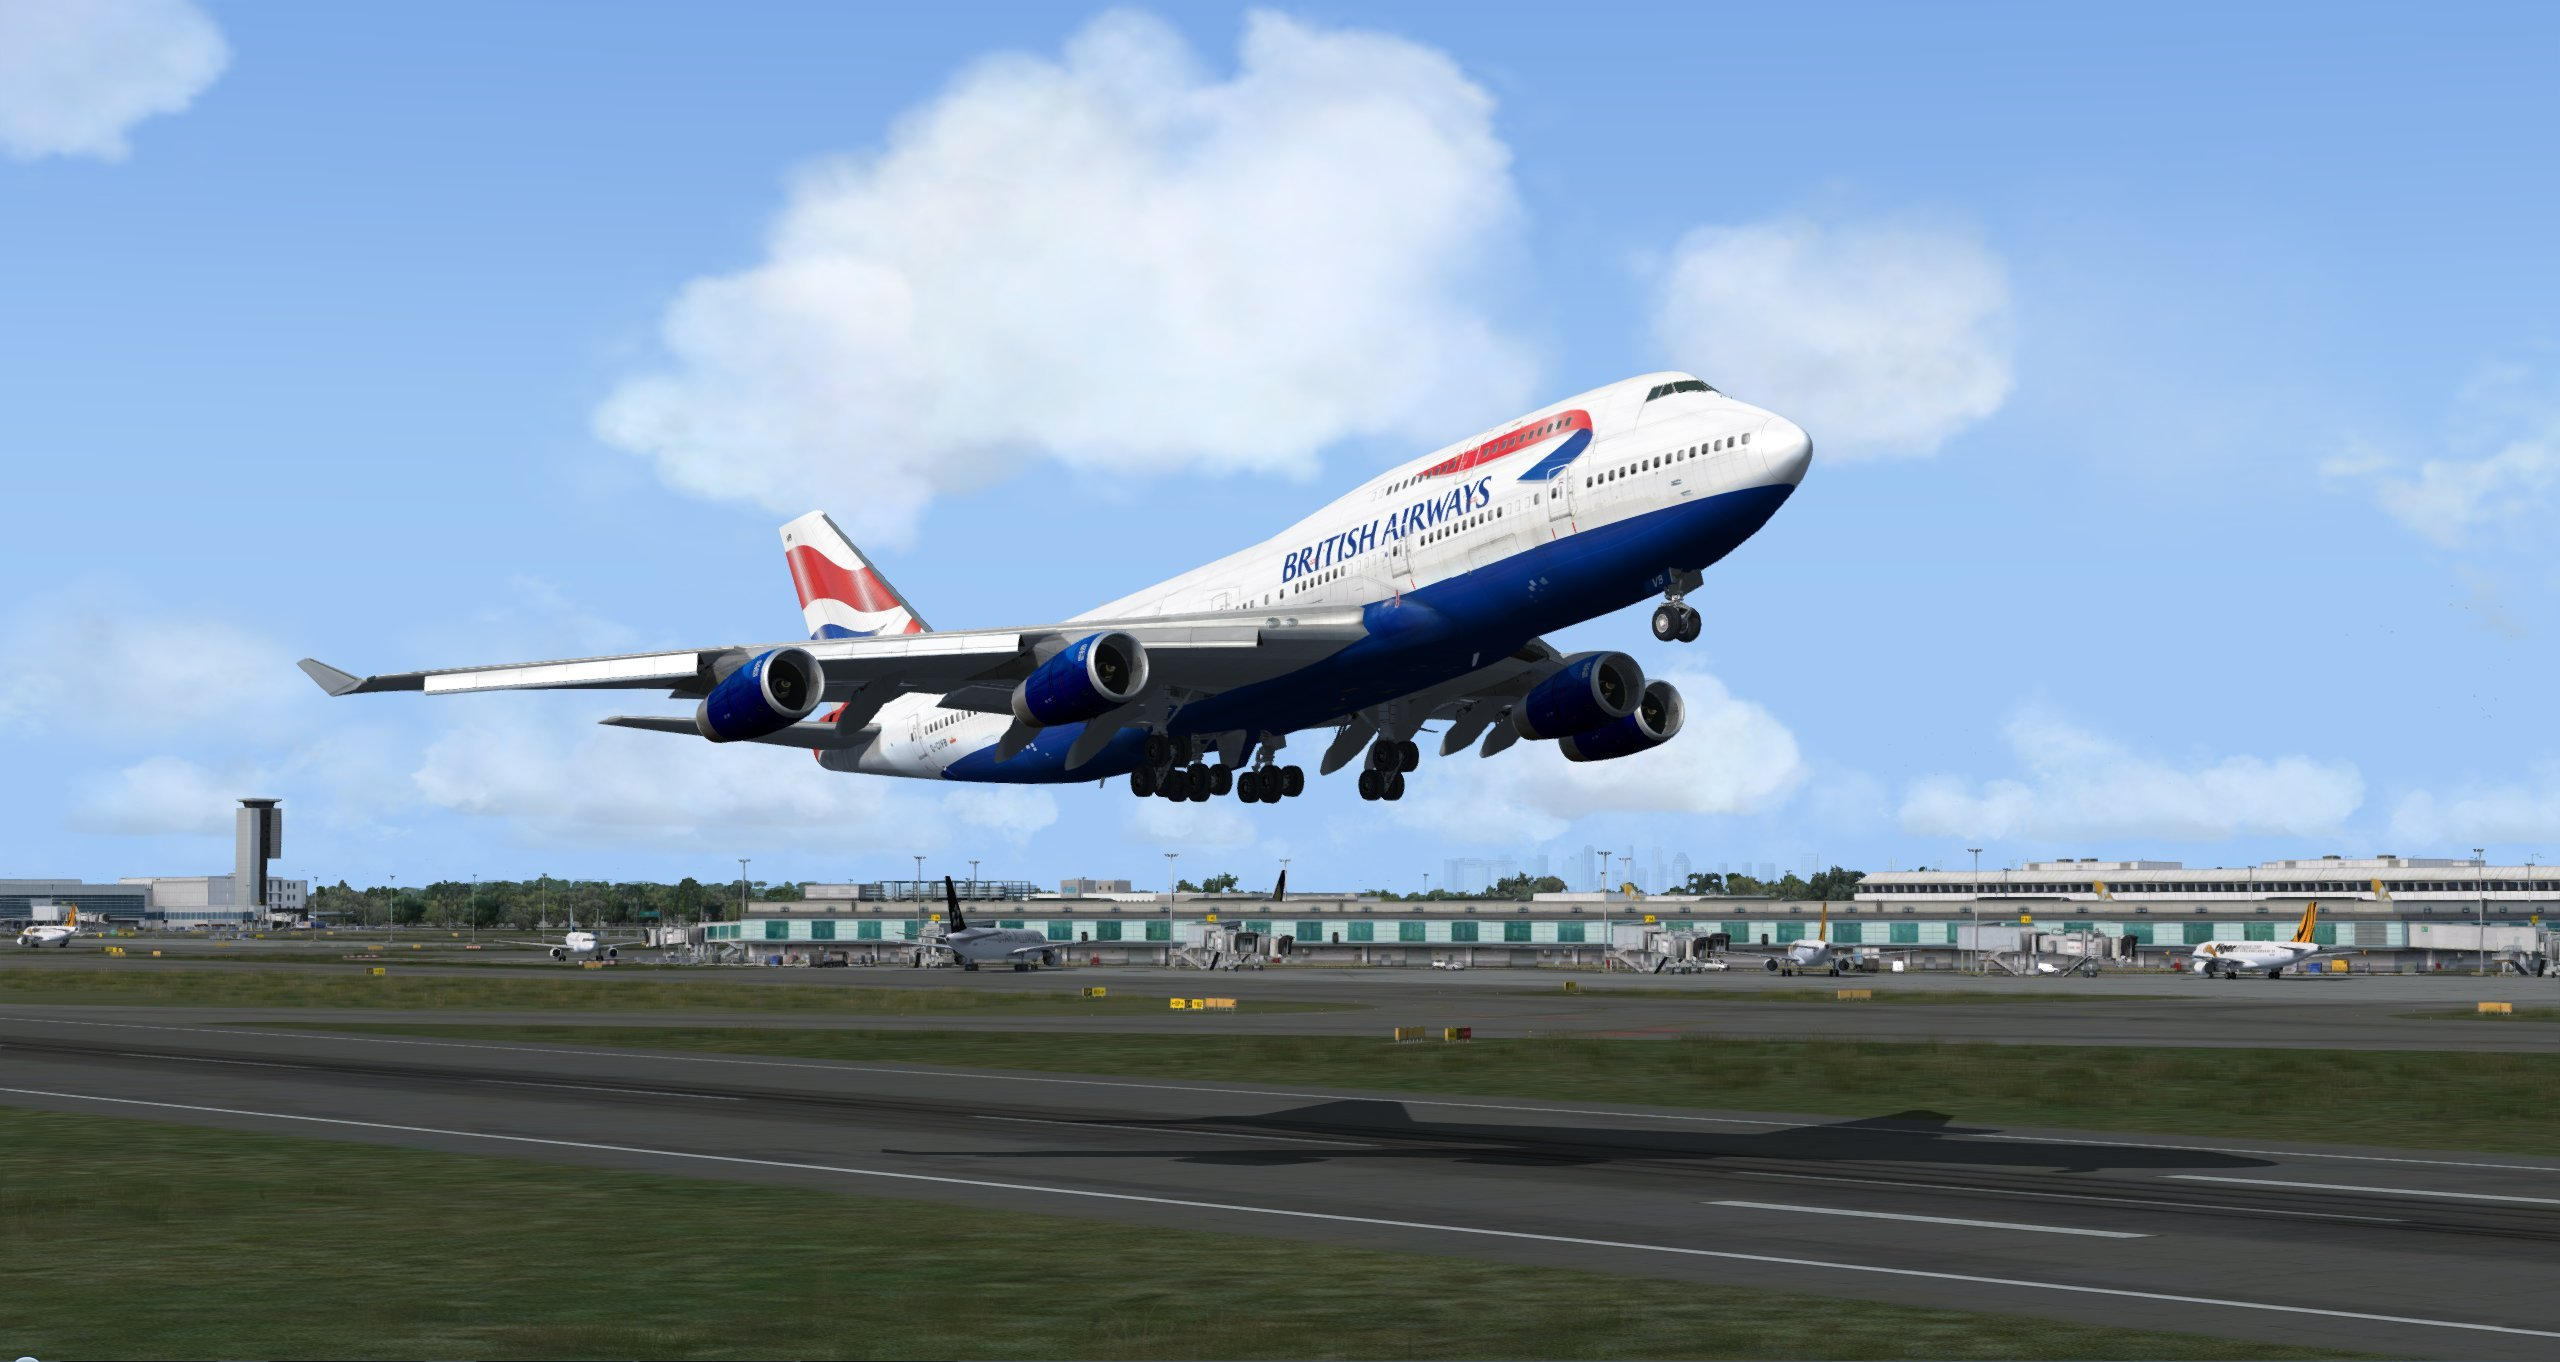 Imaginesim Releases WSSS Singapore for P3D V4! | PC Flight